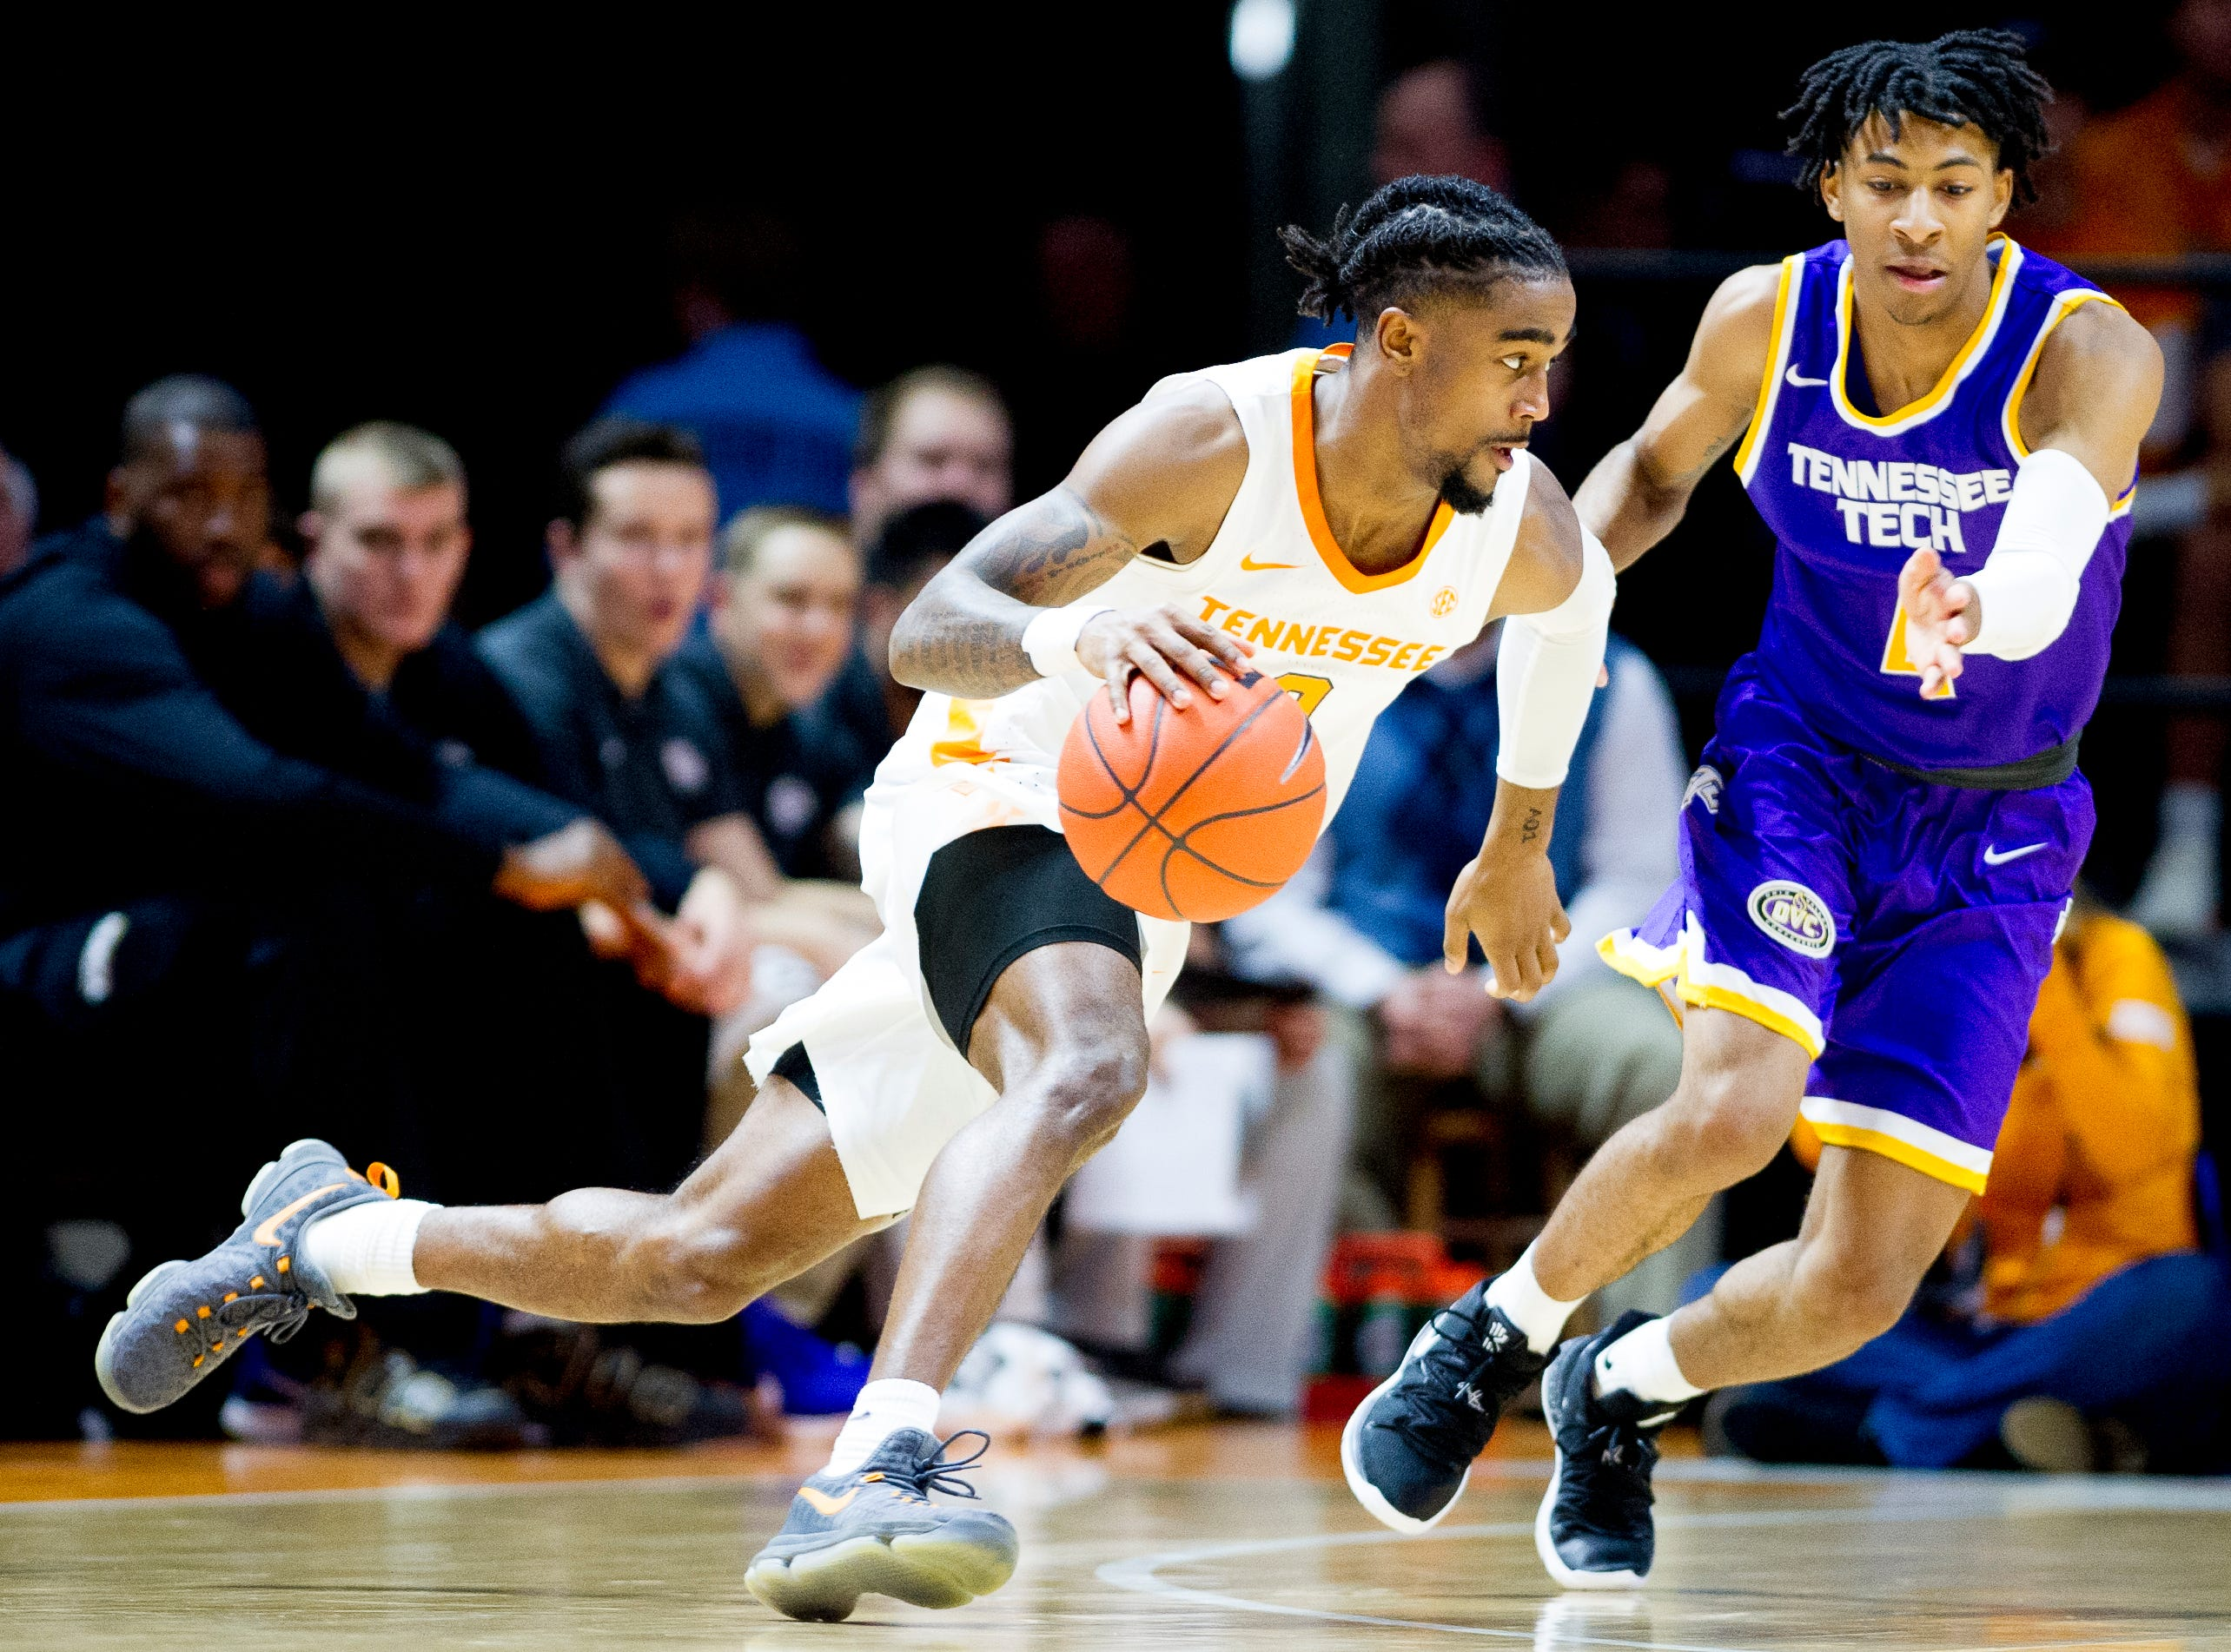 Tennessee guard Jordan Bone (0) dribbles around Tennessee Tech guard Jr. Clay (4) during a game between Tennessee and Tennessee Tech at Thompson-Boling Arena in Knoxville, Tennessee on Saturday, December 29, 2018.